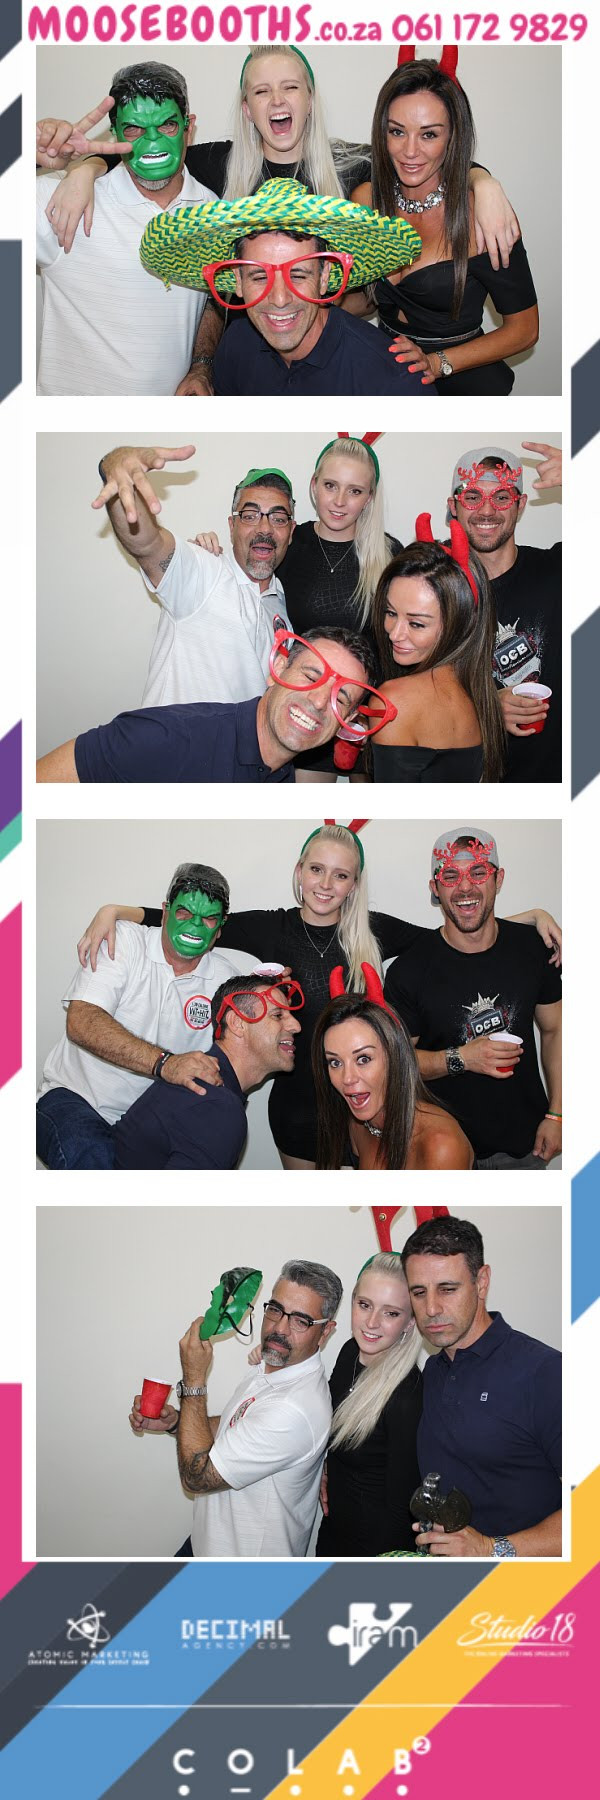 bedfordview photo booth